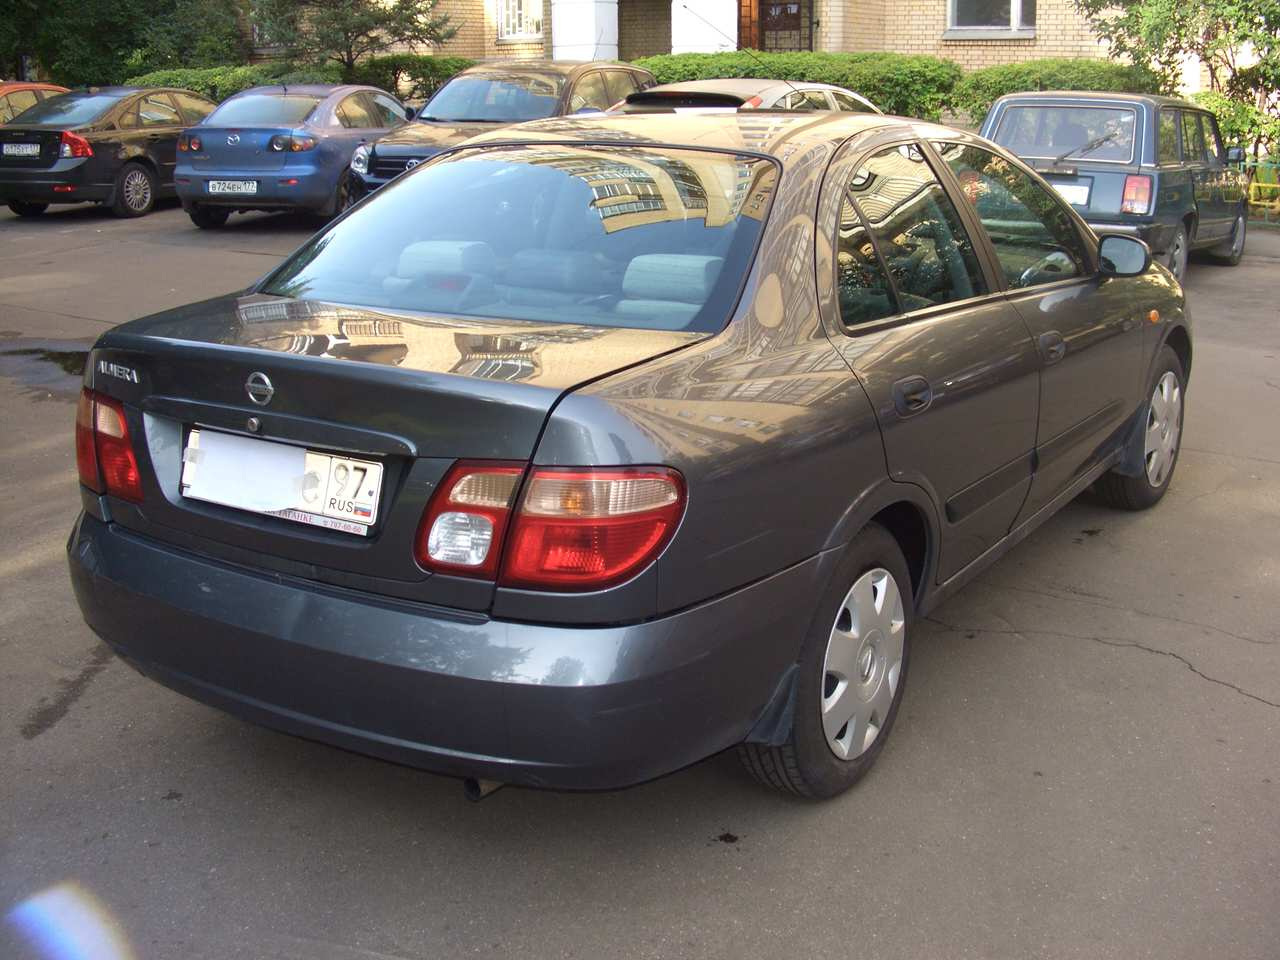 used 2004 nissan almera photos 1769cc gasoline ff automatic for sale. Black Bedroom Furniture Sets. Home Design Ideas